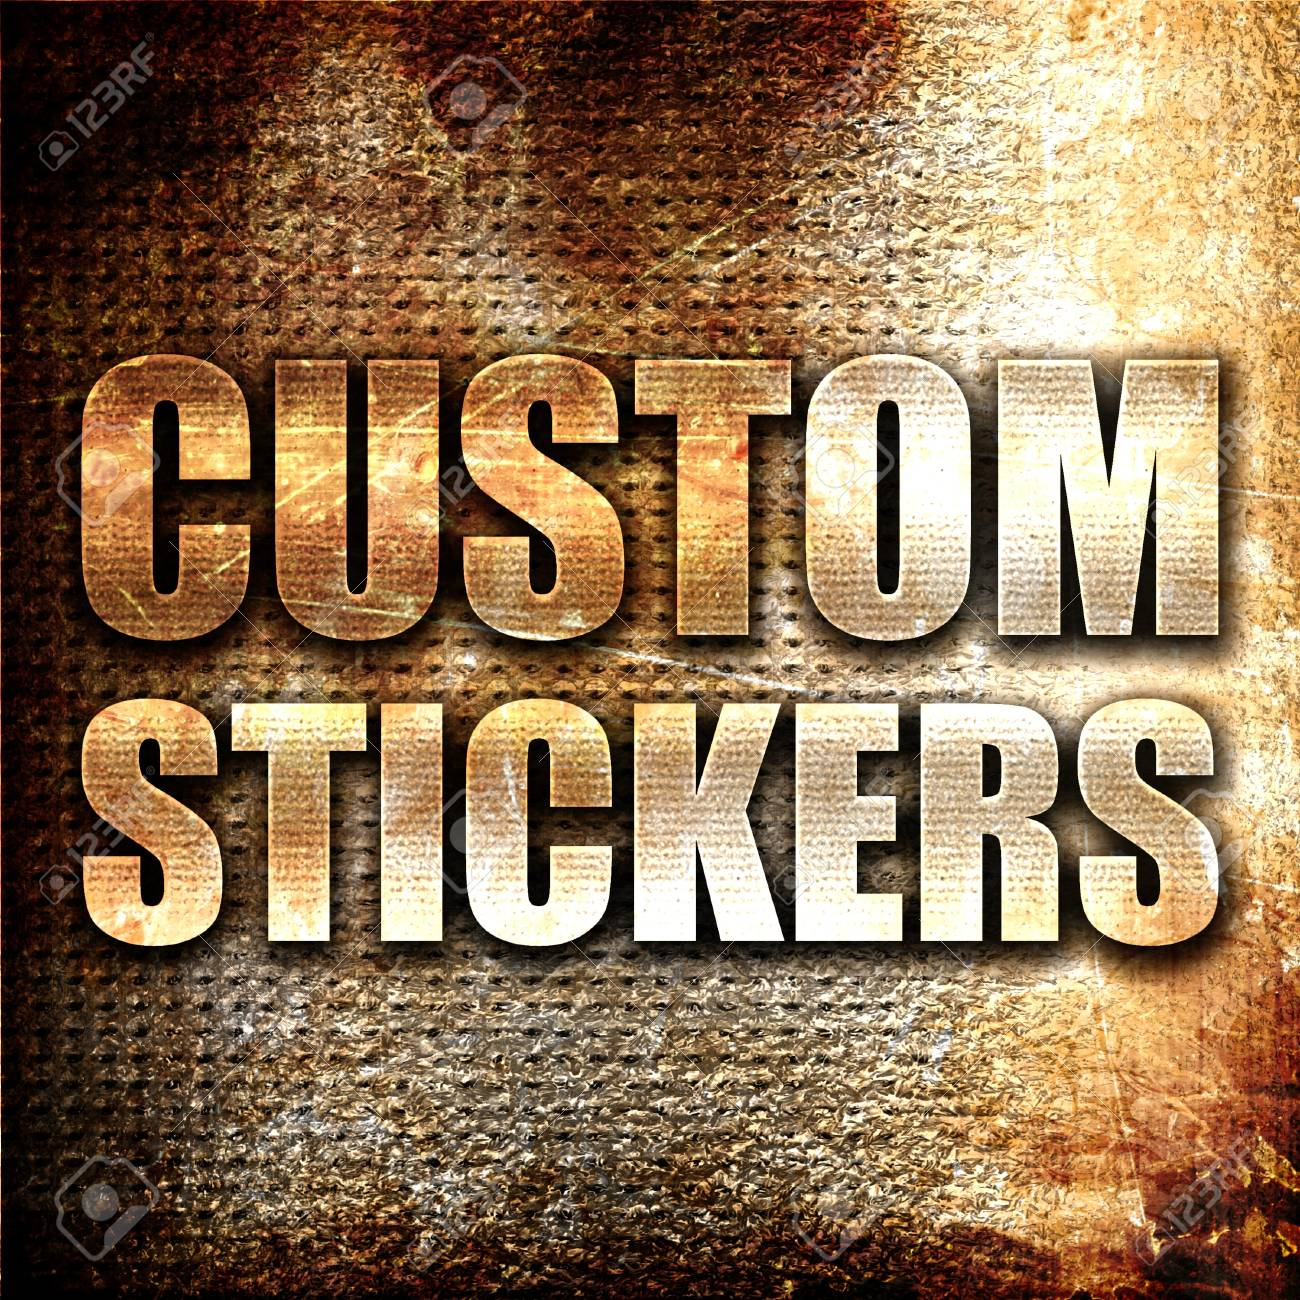 Custom stickers 3d rendering metal text on rust background stock photo 58069358